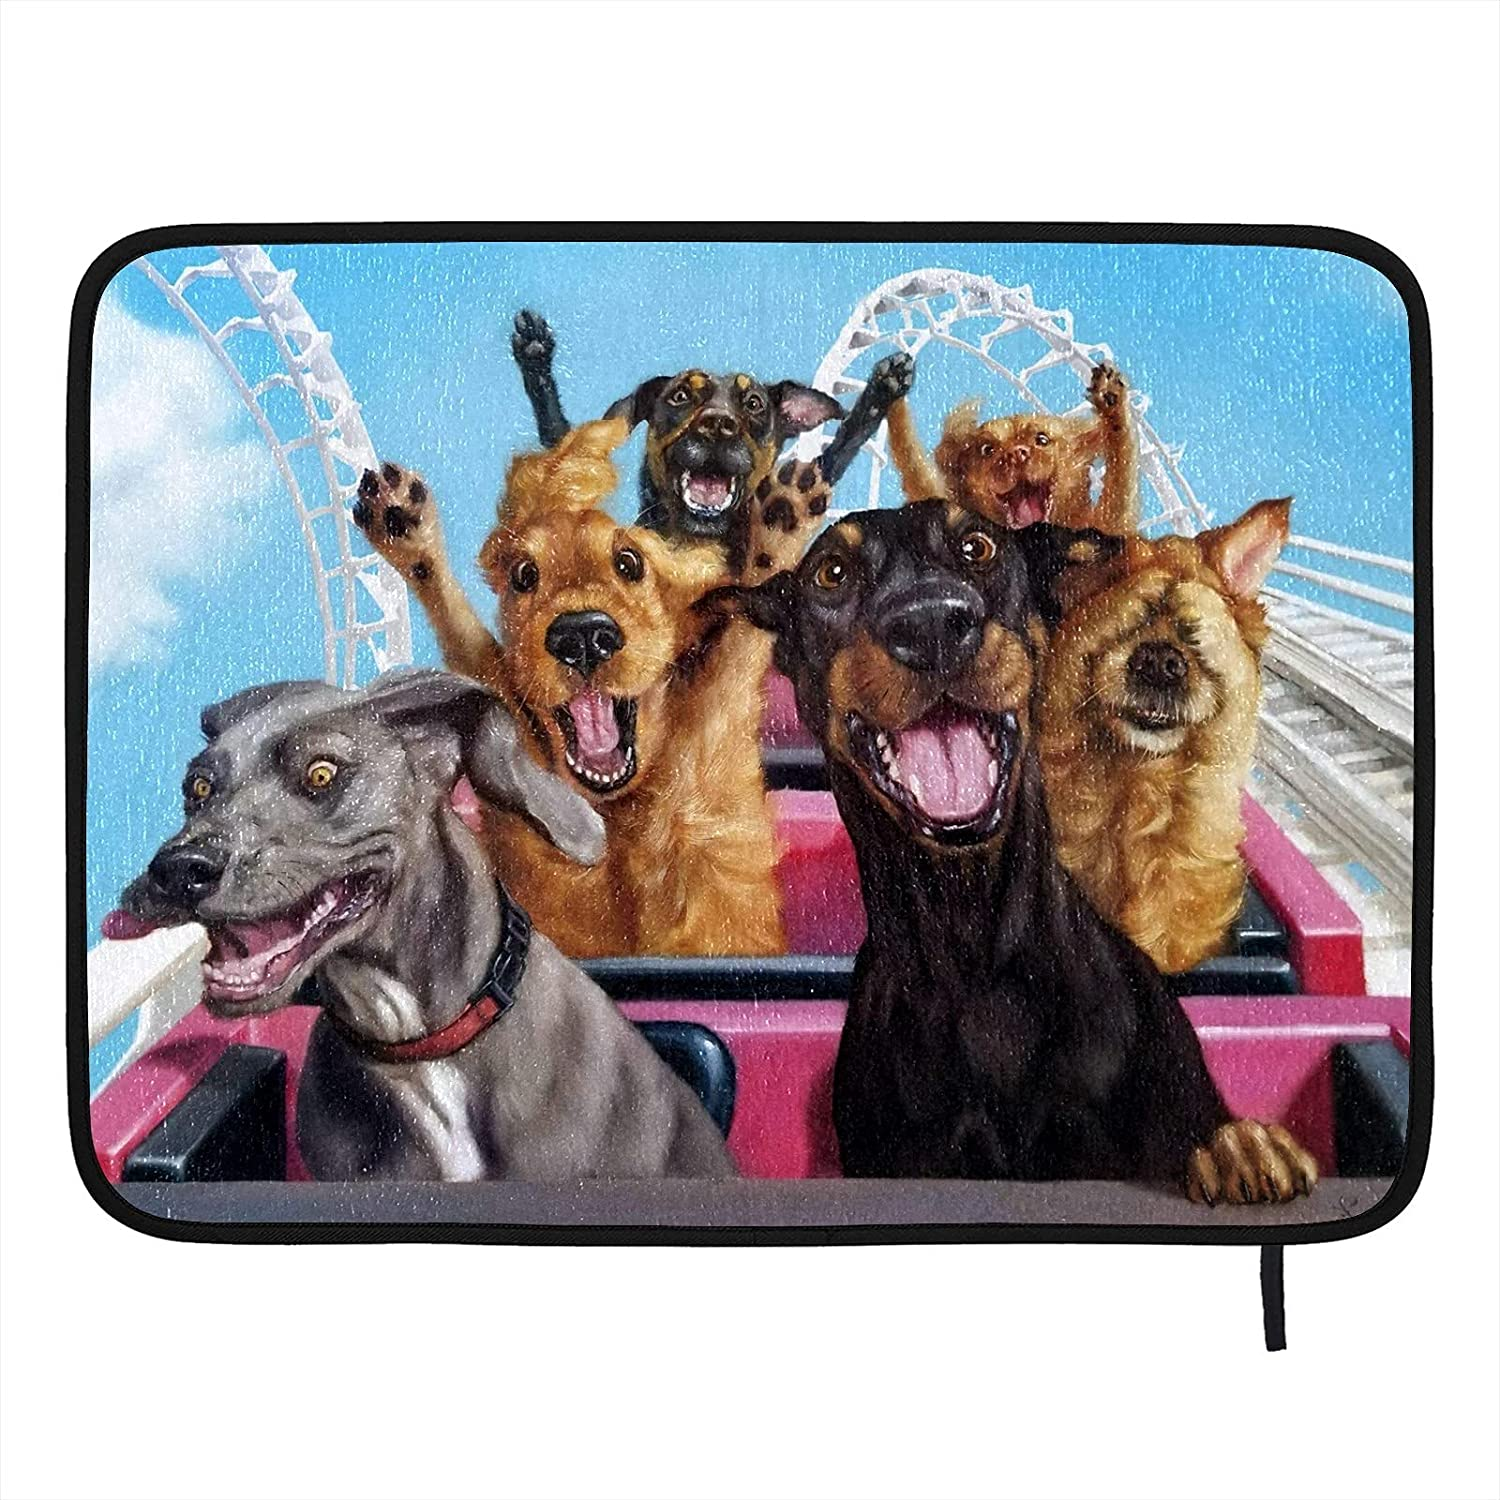 DOINB Clearance SALE Limited time Funny Dogs Large Dish Drying Mat Kitchen Memphis Mall for Counter-18 x